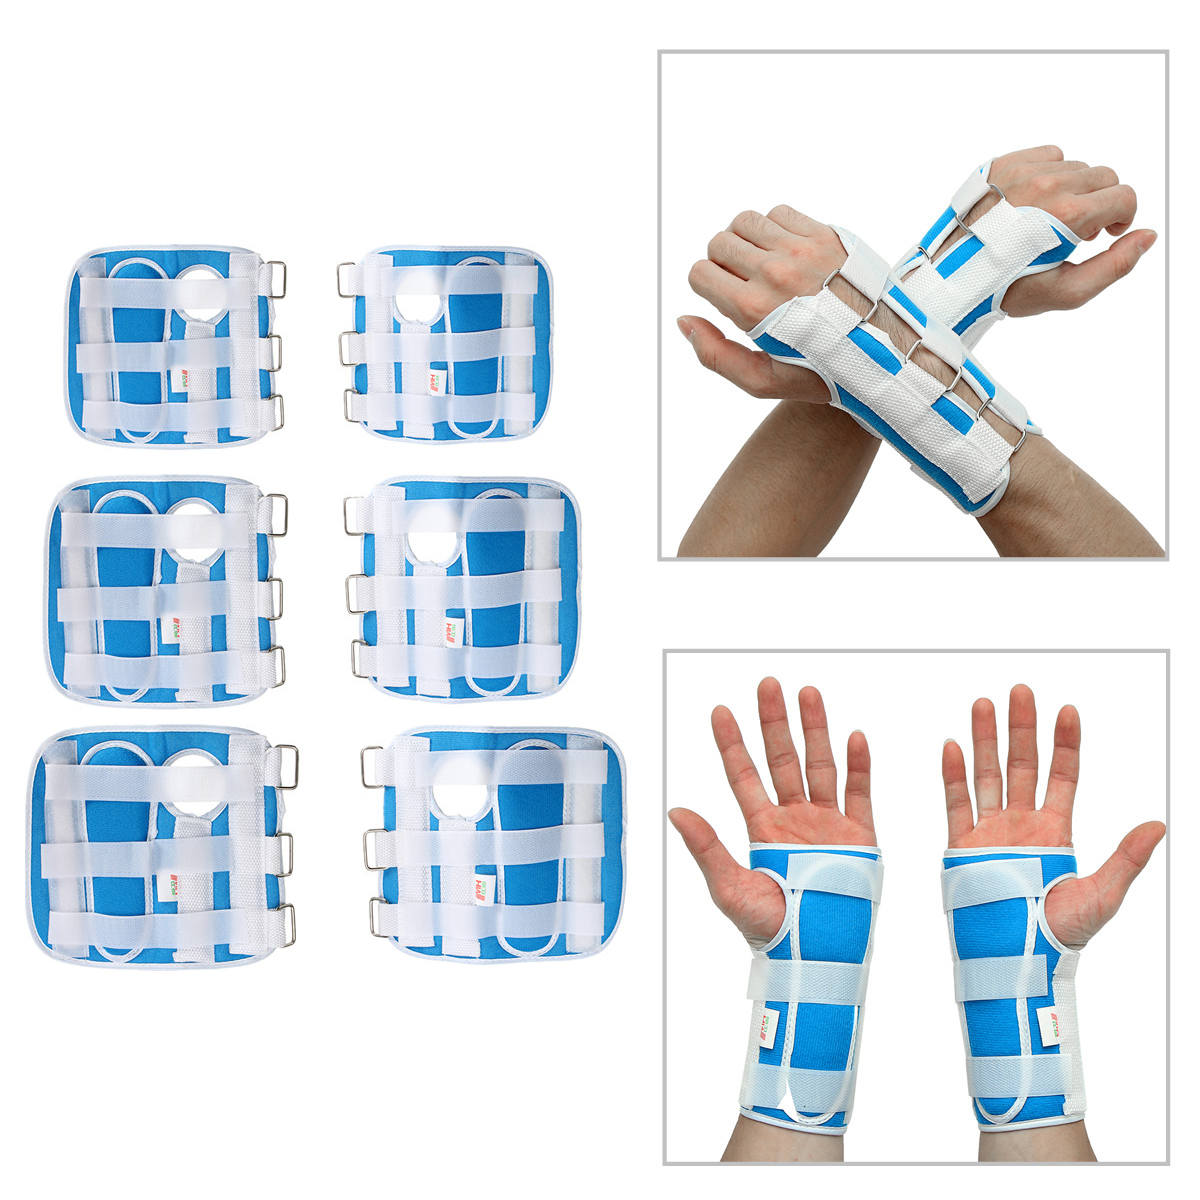 S/M/L Breathable Medical Carpal Tunnel Wrist Brace Pad Right and Left Hands Splint Support Arthritis Sprain Gym Hand Protector Adjustable